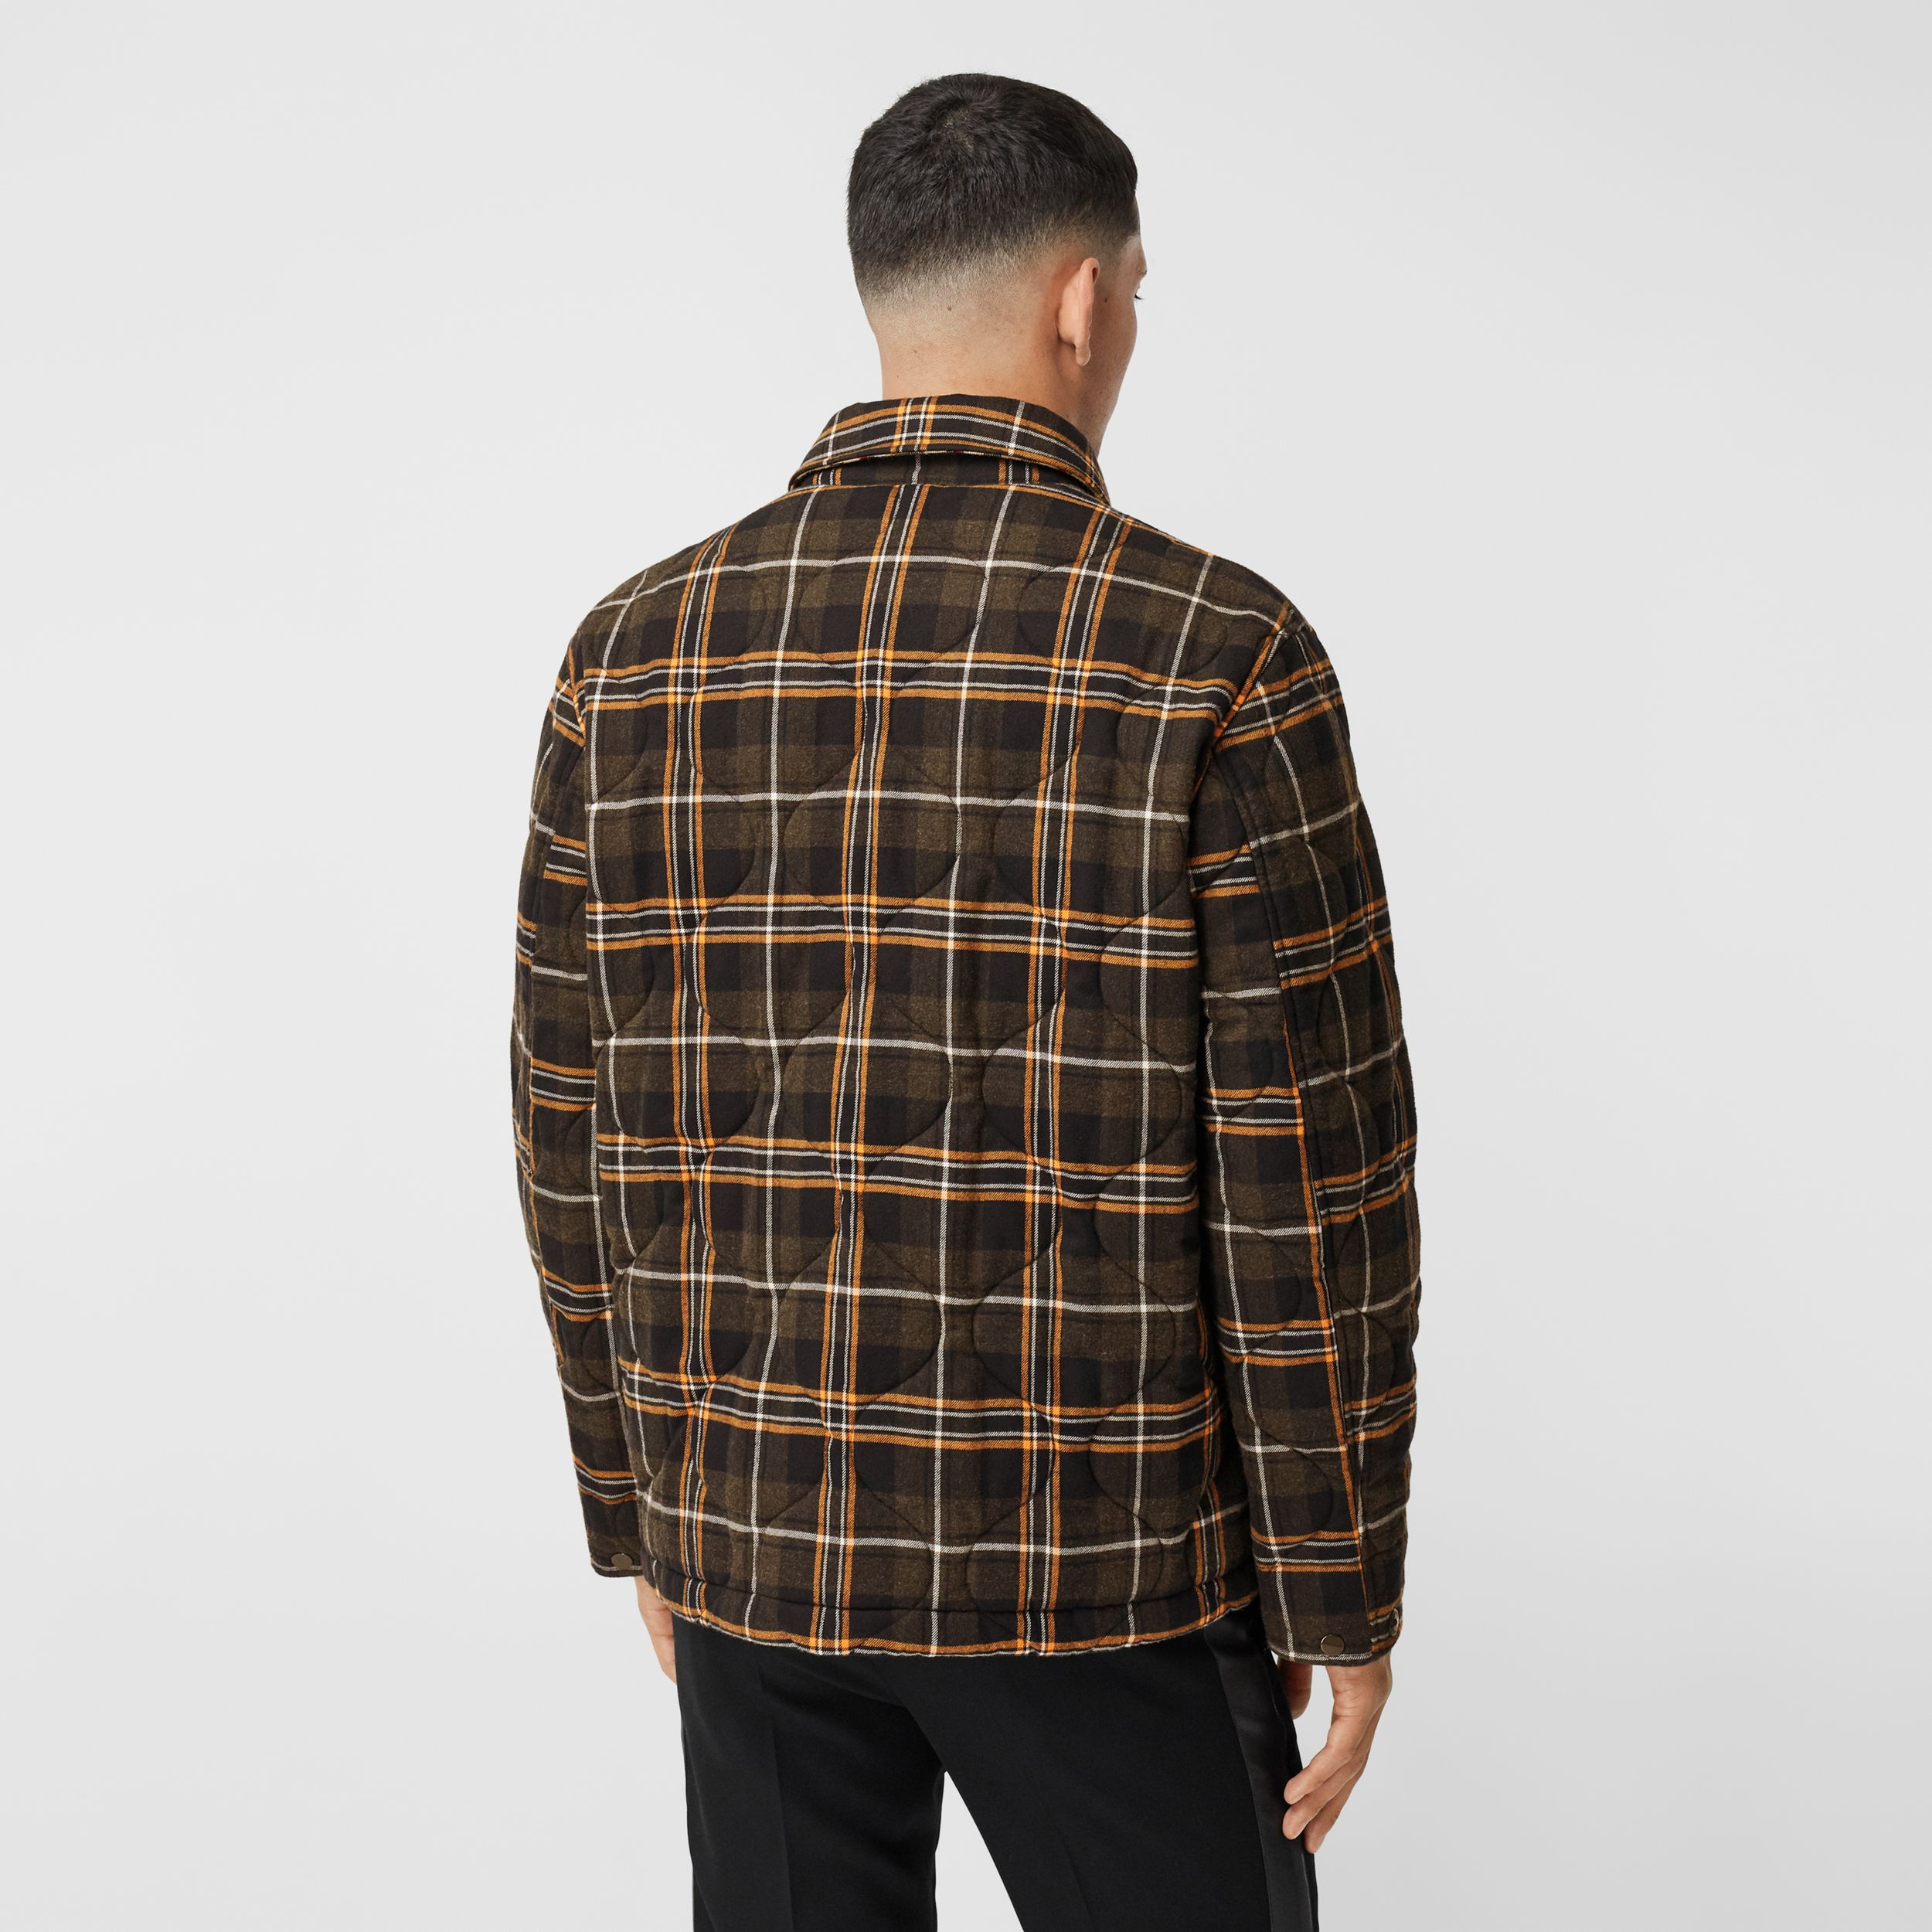 Contrast Pocket Check Cotton Flannel Overshirt in Olive - Men | Burberry Hong Kong S.A.R. - 3